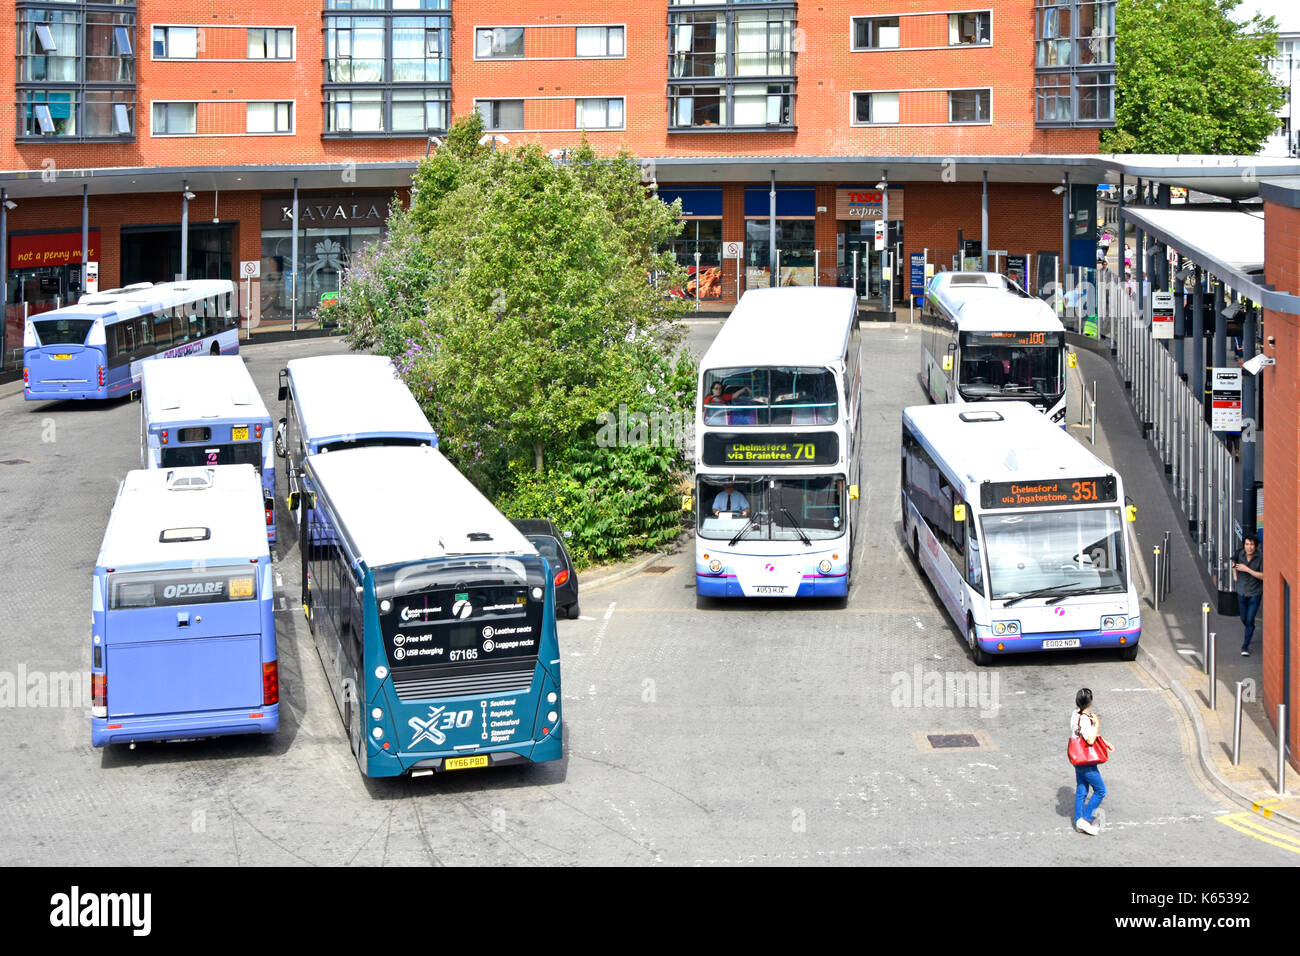 View from above looking down at buses Chelmsford town centre bus station which includes small selection of retail Stock Photo